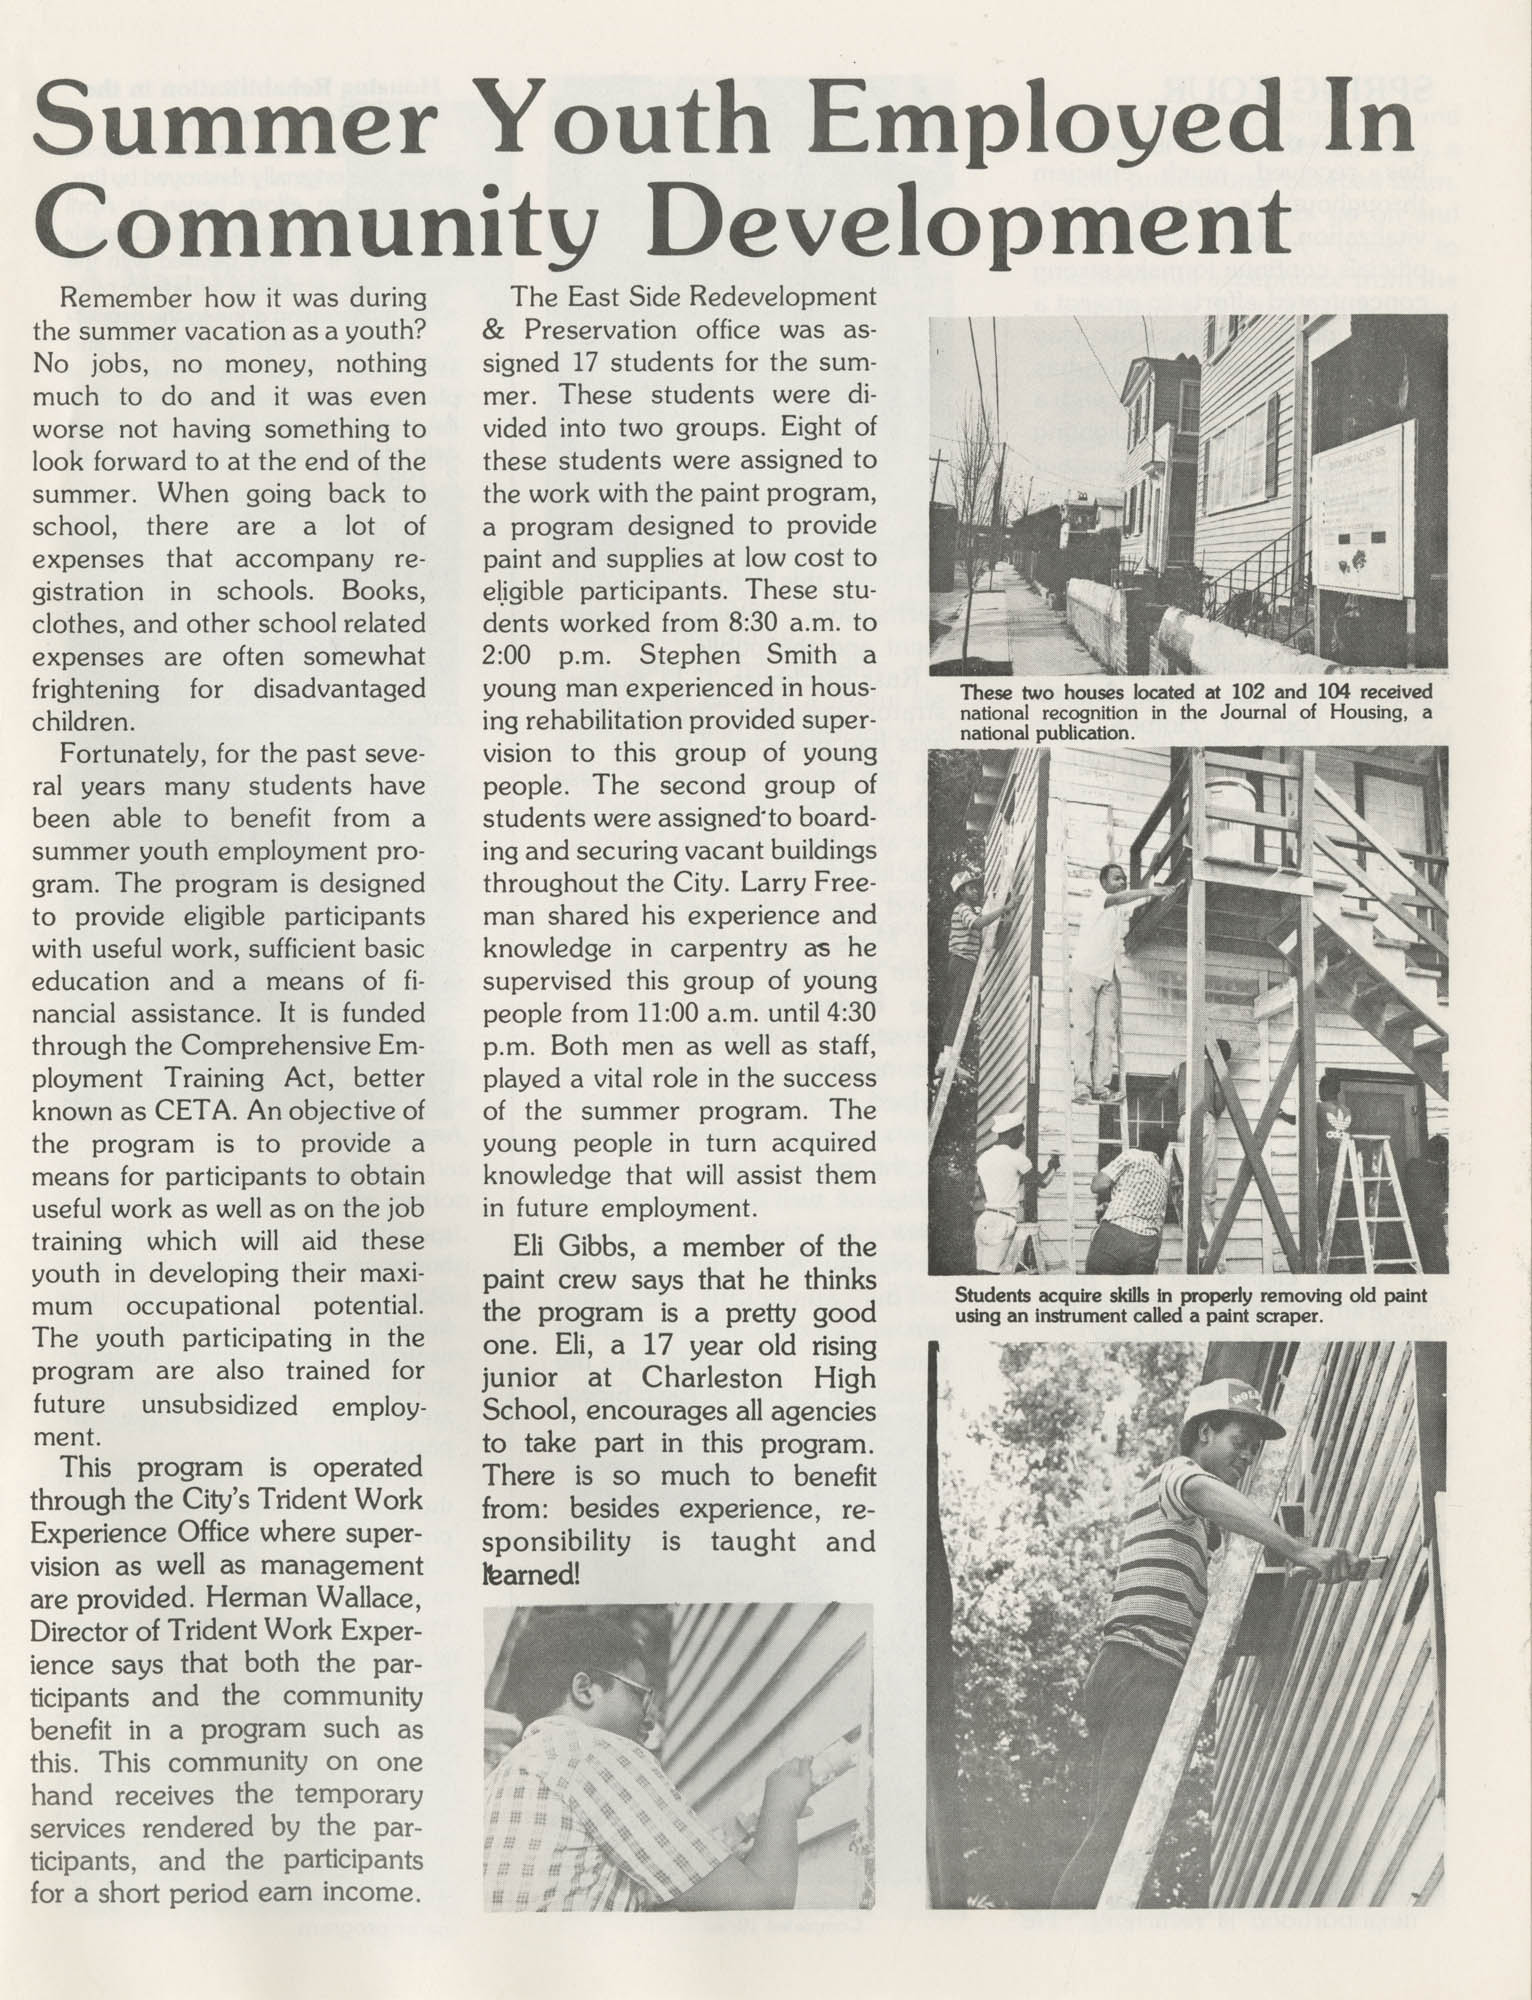 C. D. Newsletter, A City of Charleston Community Development Publication, Summer Issue - 1982, Page 2